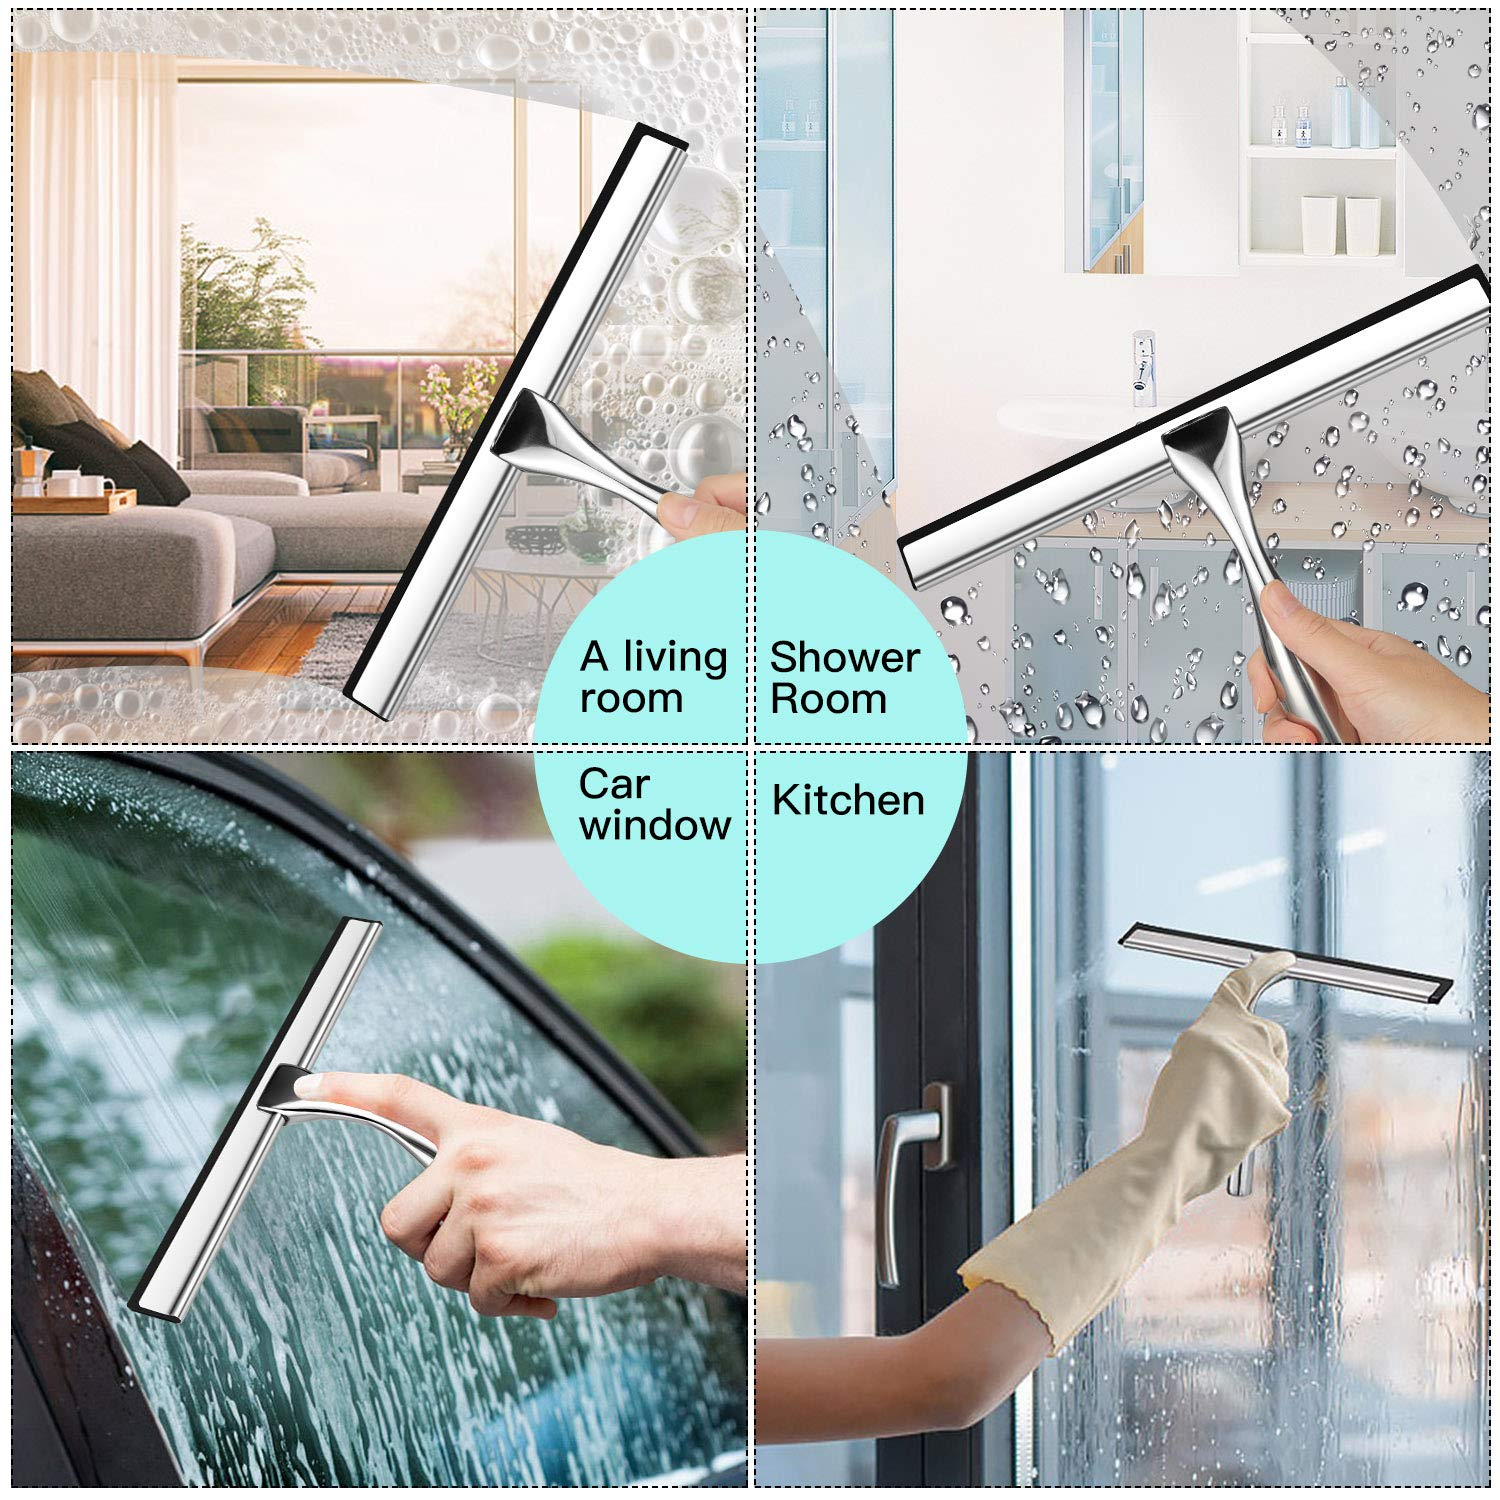 FANSIN All-Purpose Shower Squeegee for Shower Doors, Bathroom, Window and Car Glass - Stainless Steel, 10 Inches (10 inches)